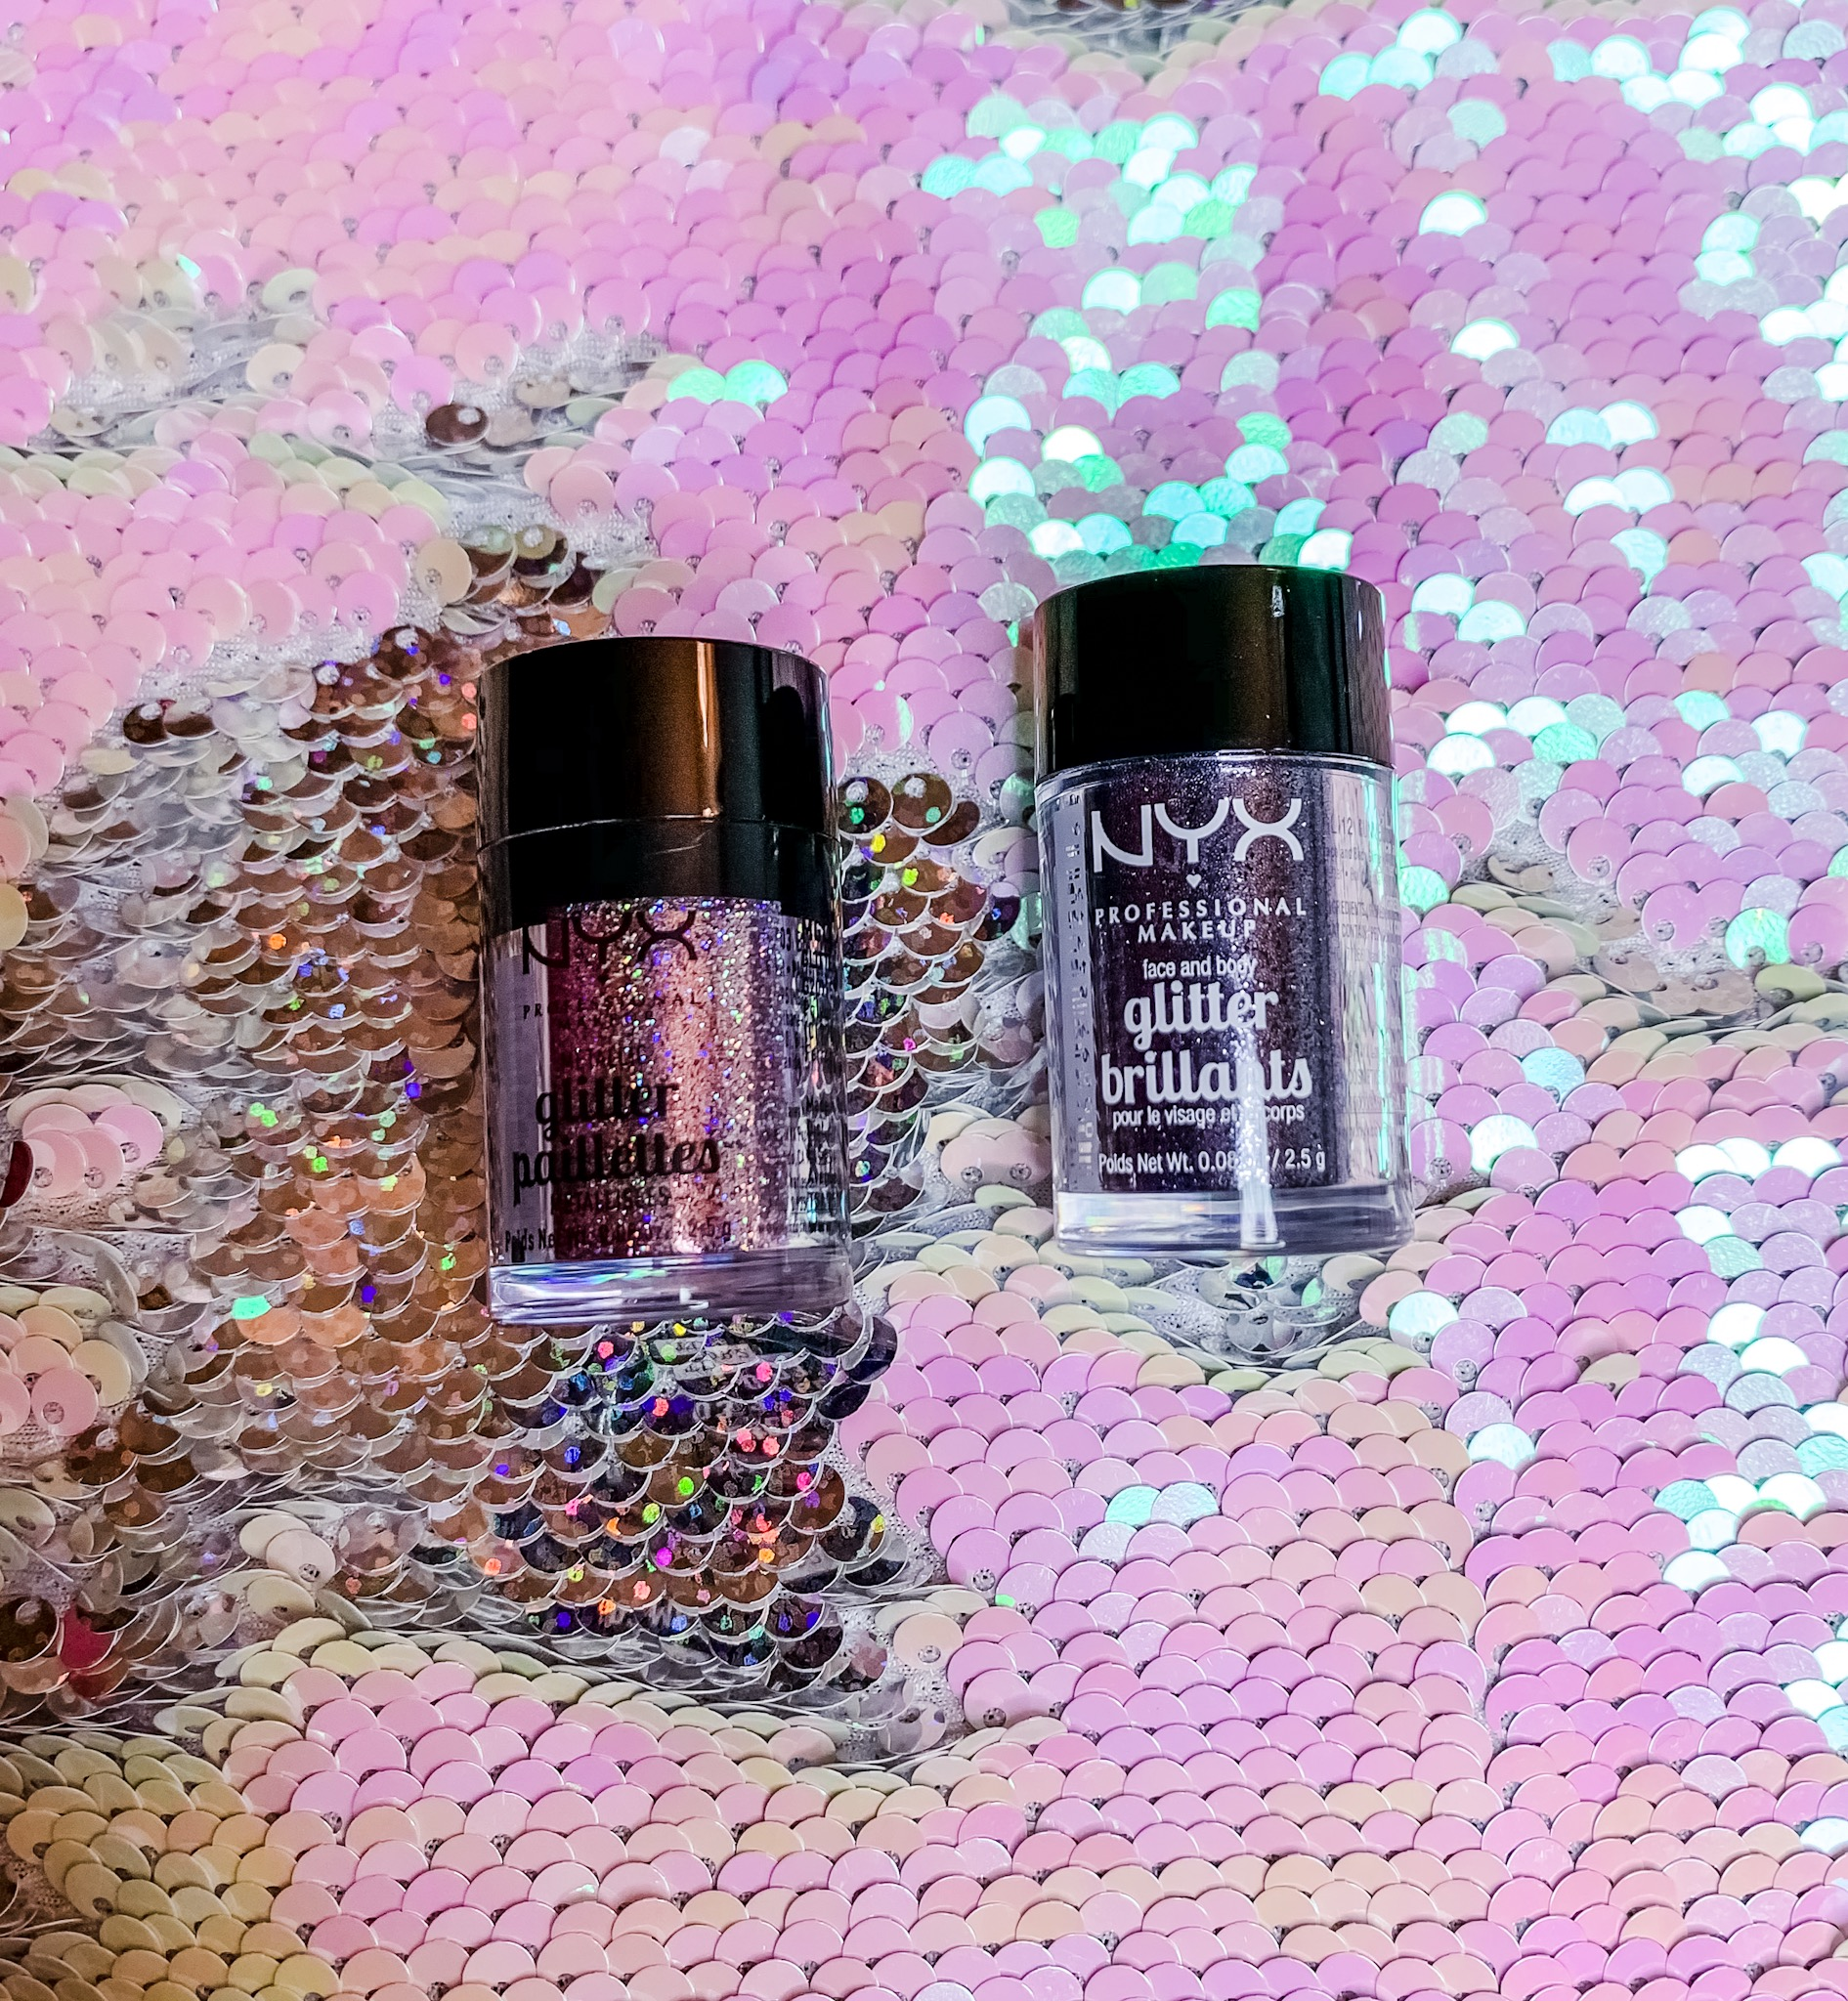 loose glitter - Metallic glitter $6.50 - in beauty beamFace and body glitter $6.50 - in Silver